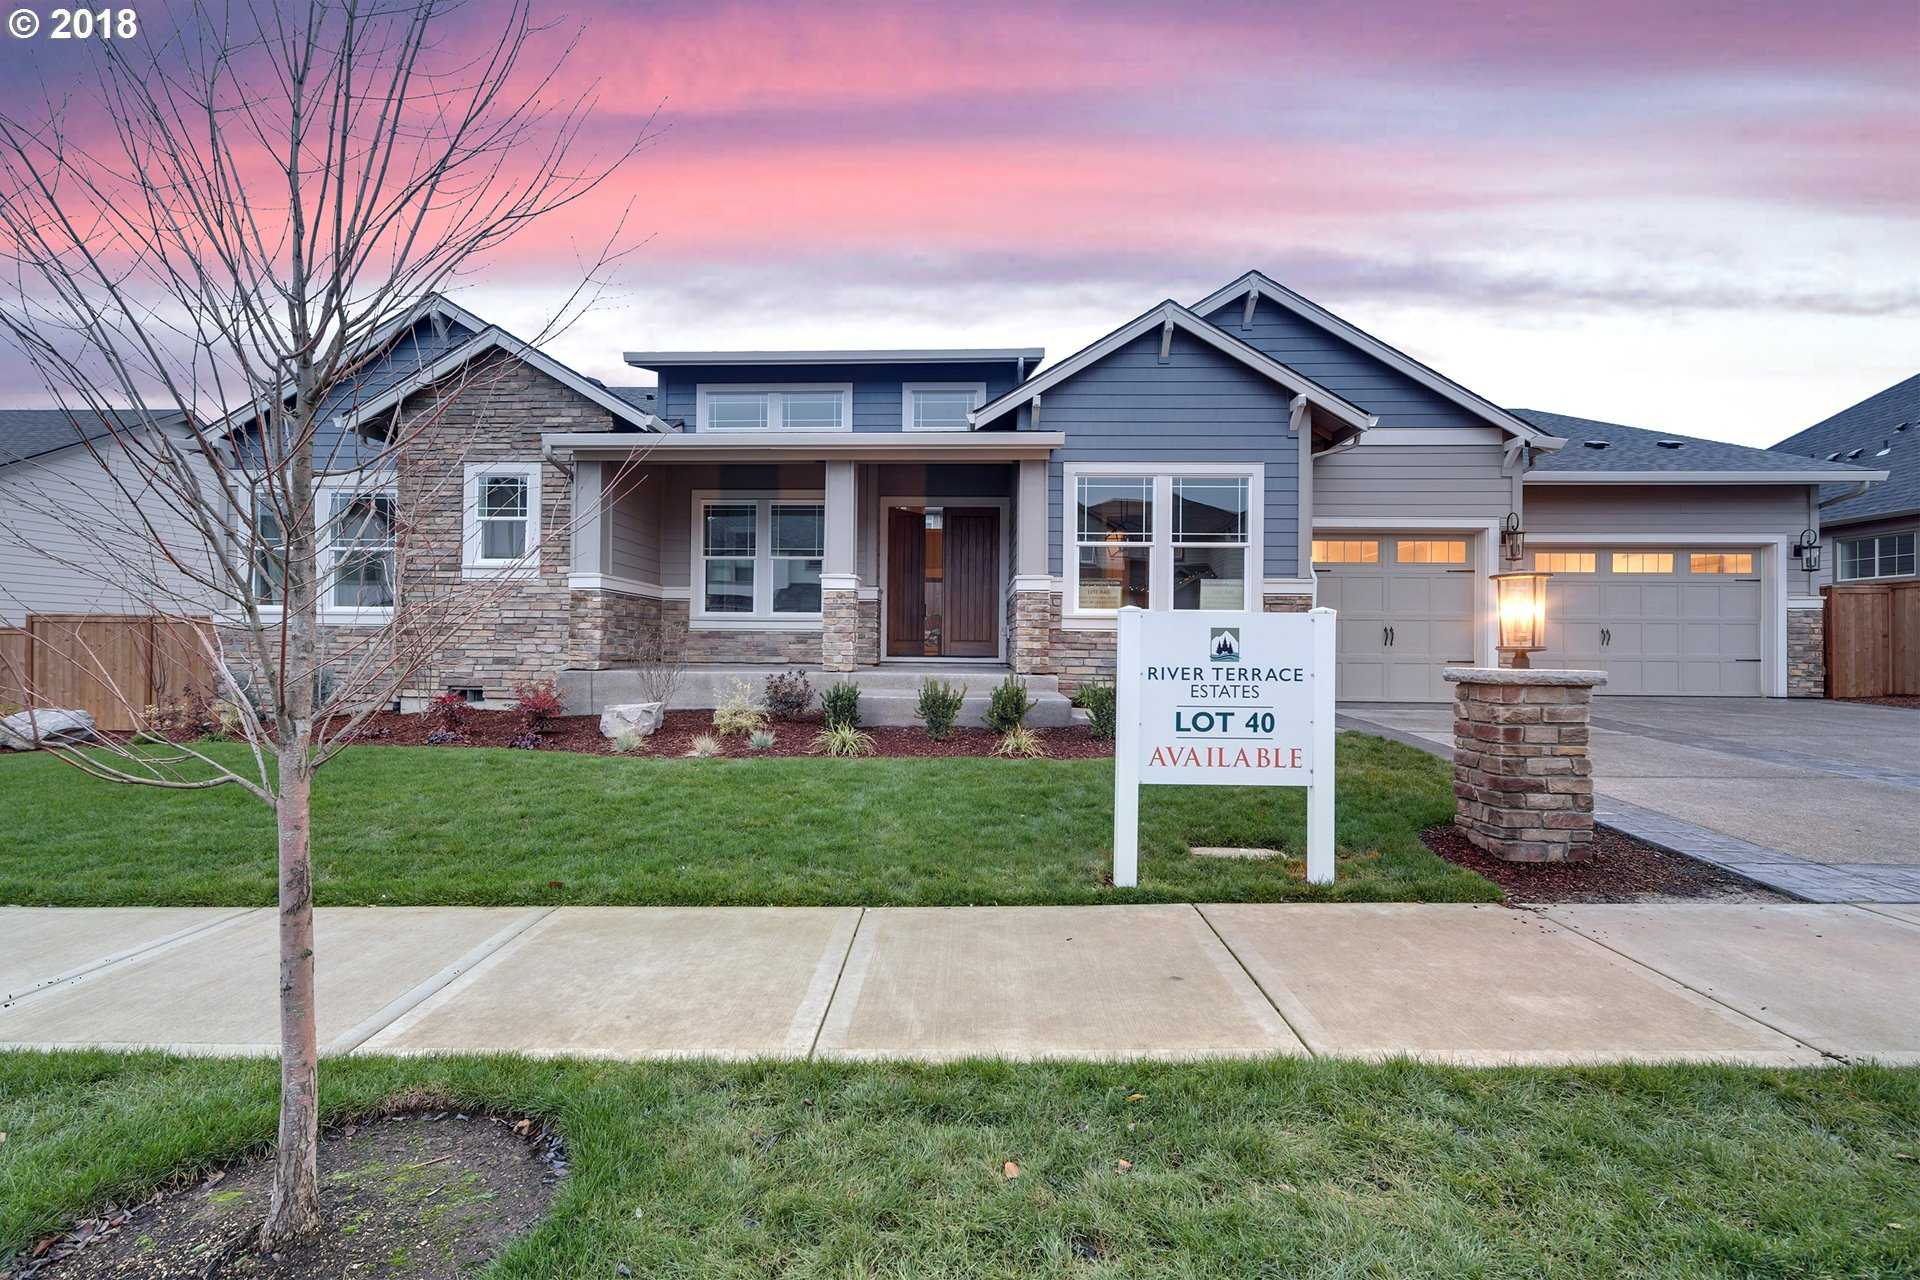 $969,990 - 4Br/4Ba -  for Sale in The Estates At River Terrace, Tigard